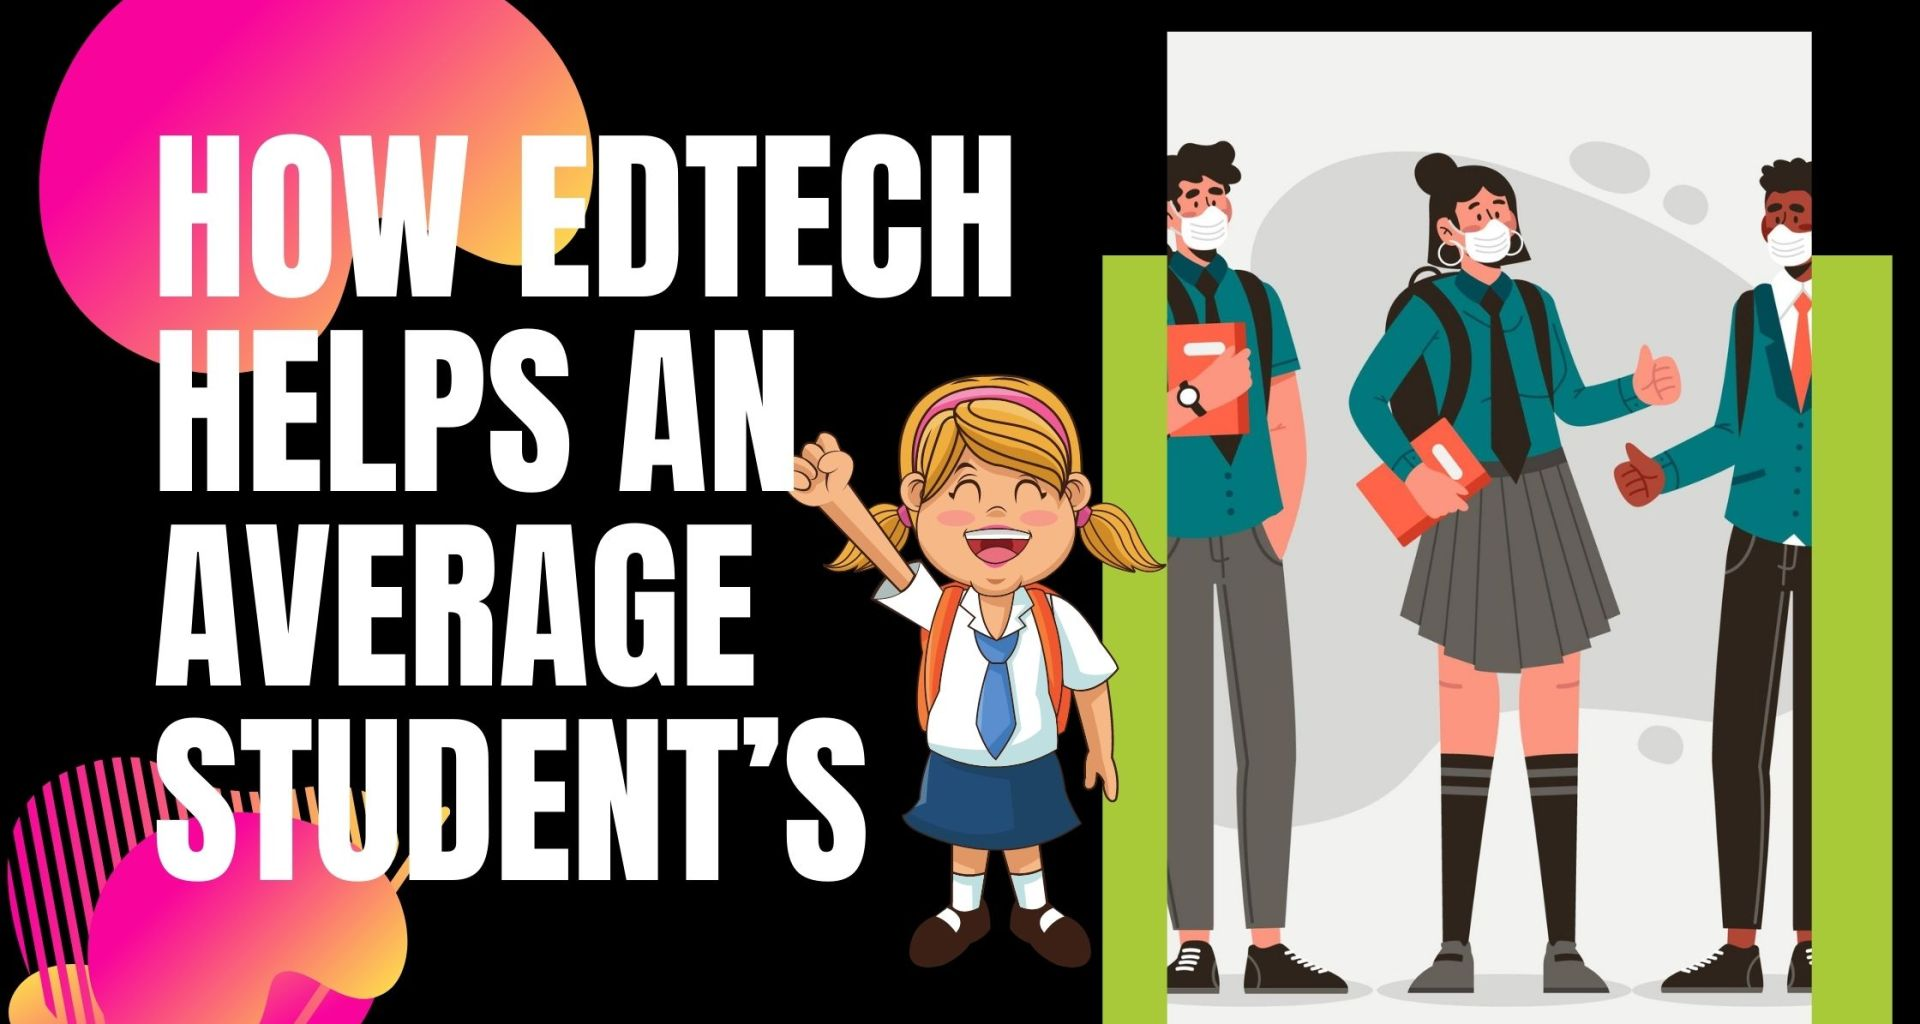 How Edtech Helps an Average Student's